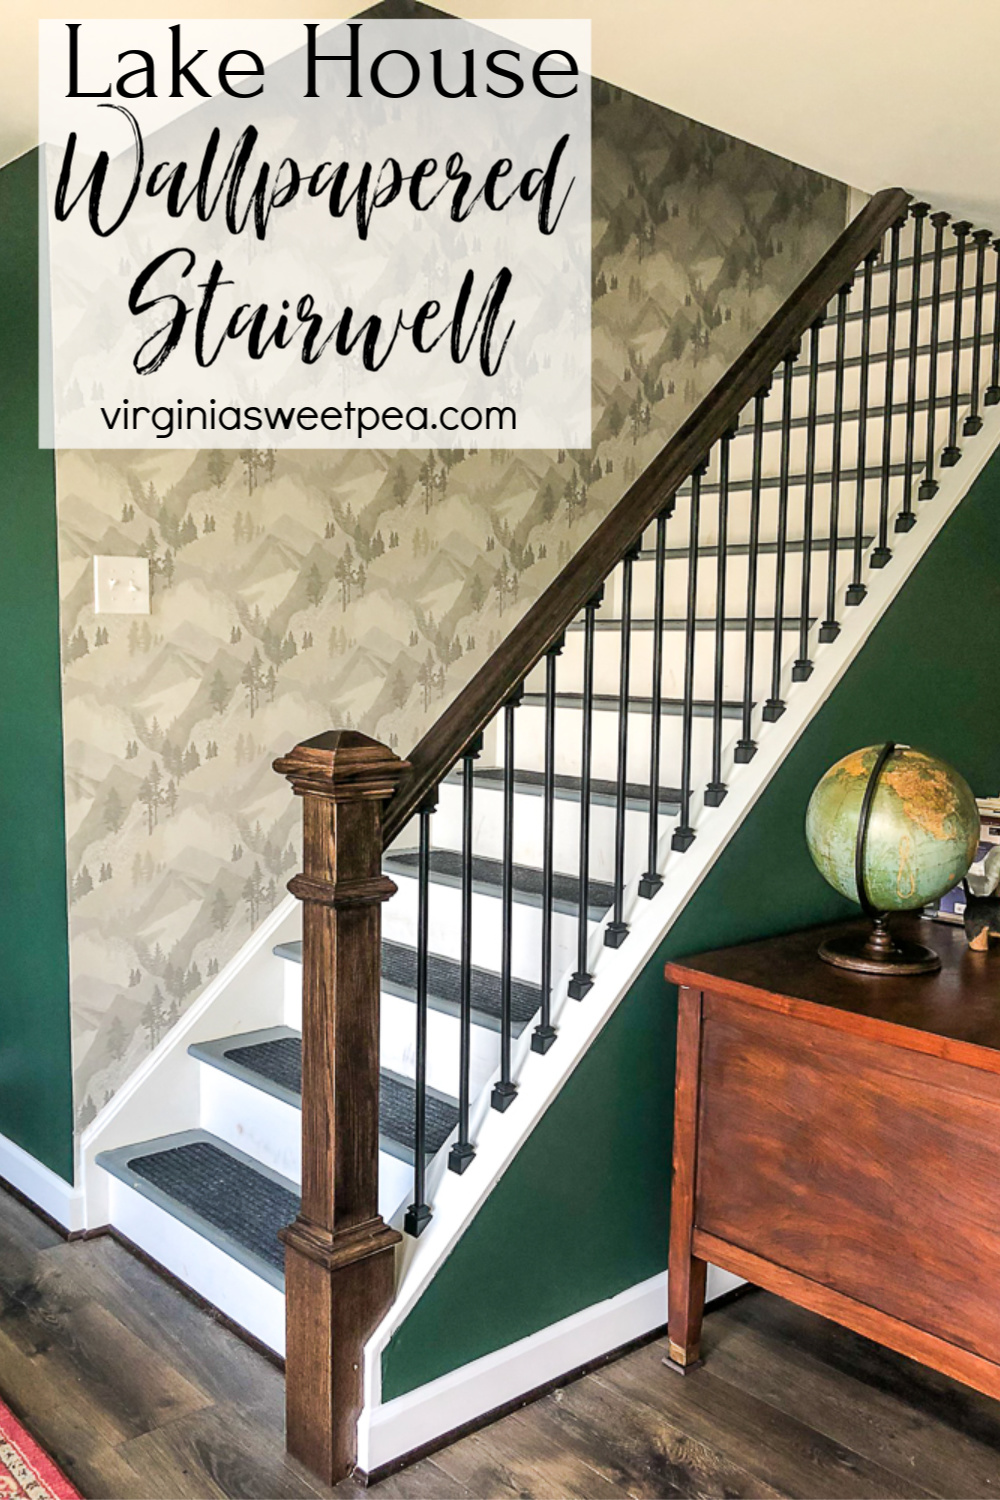 Lake House Wallpapered Stairwell - Reveal of a stairwell wallpapered with Brewster wallpaper in Range Light Grey Mountain.  #wallpaper #wallpaperedstairwell #lakehouse #lakehousedecor #smithmountainlake #brewsterwallpaper via @spaula